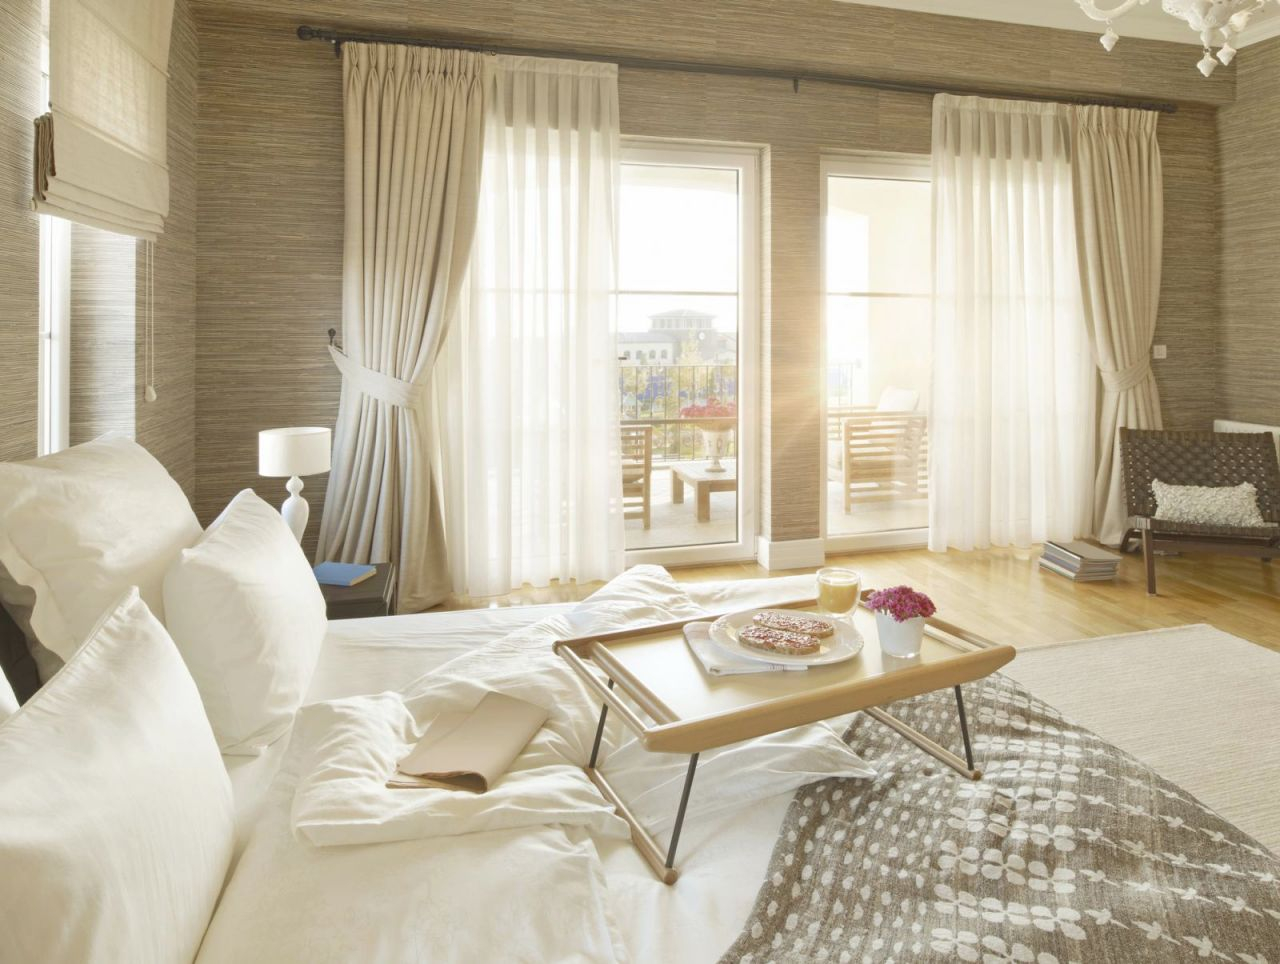 8 Feng Shui Decorating Tips For A Soothing Space | Lovetoknow regarding Feng Shui Bedroom Decorating Ideas